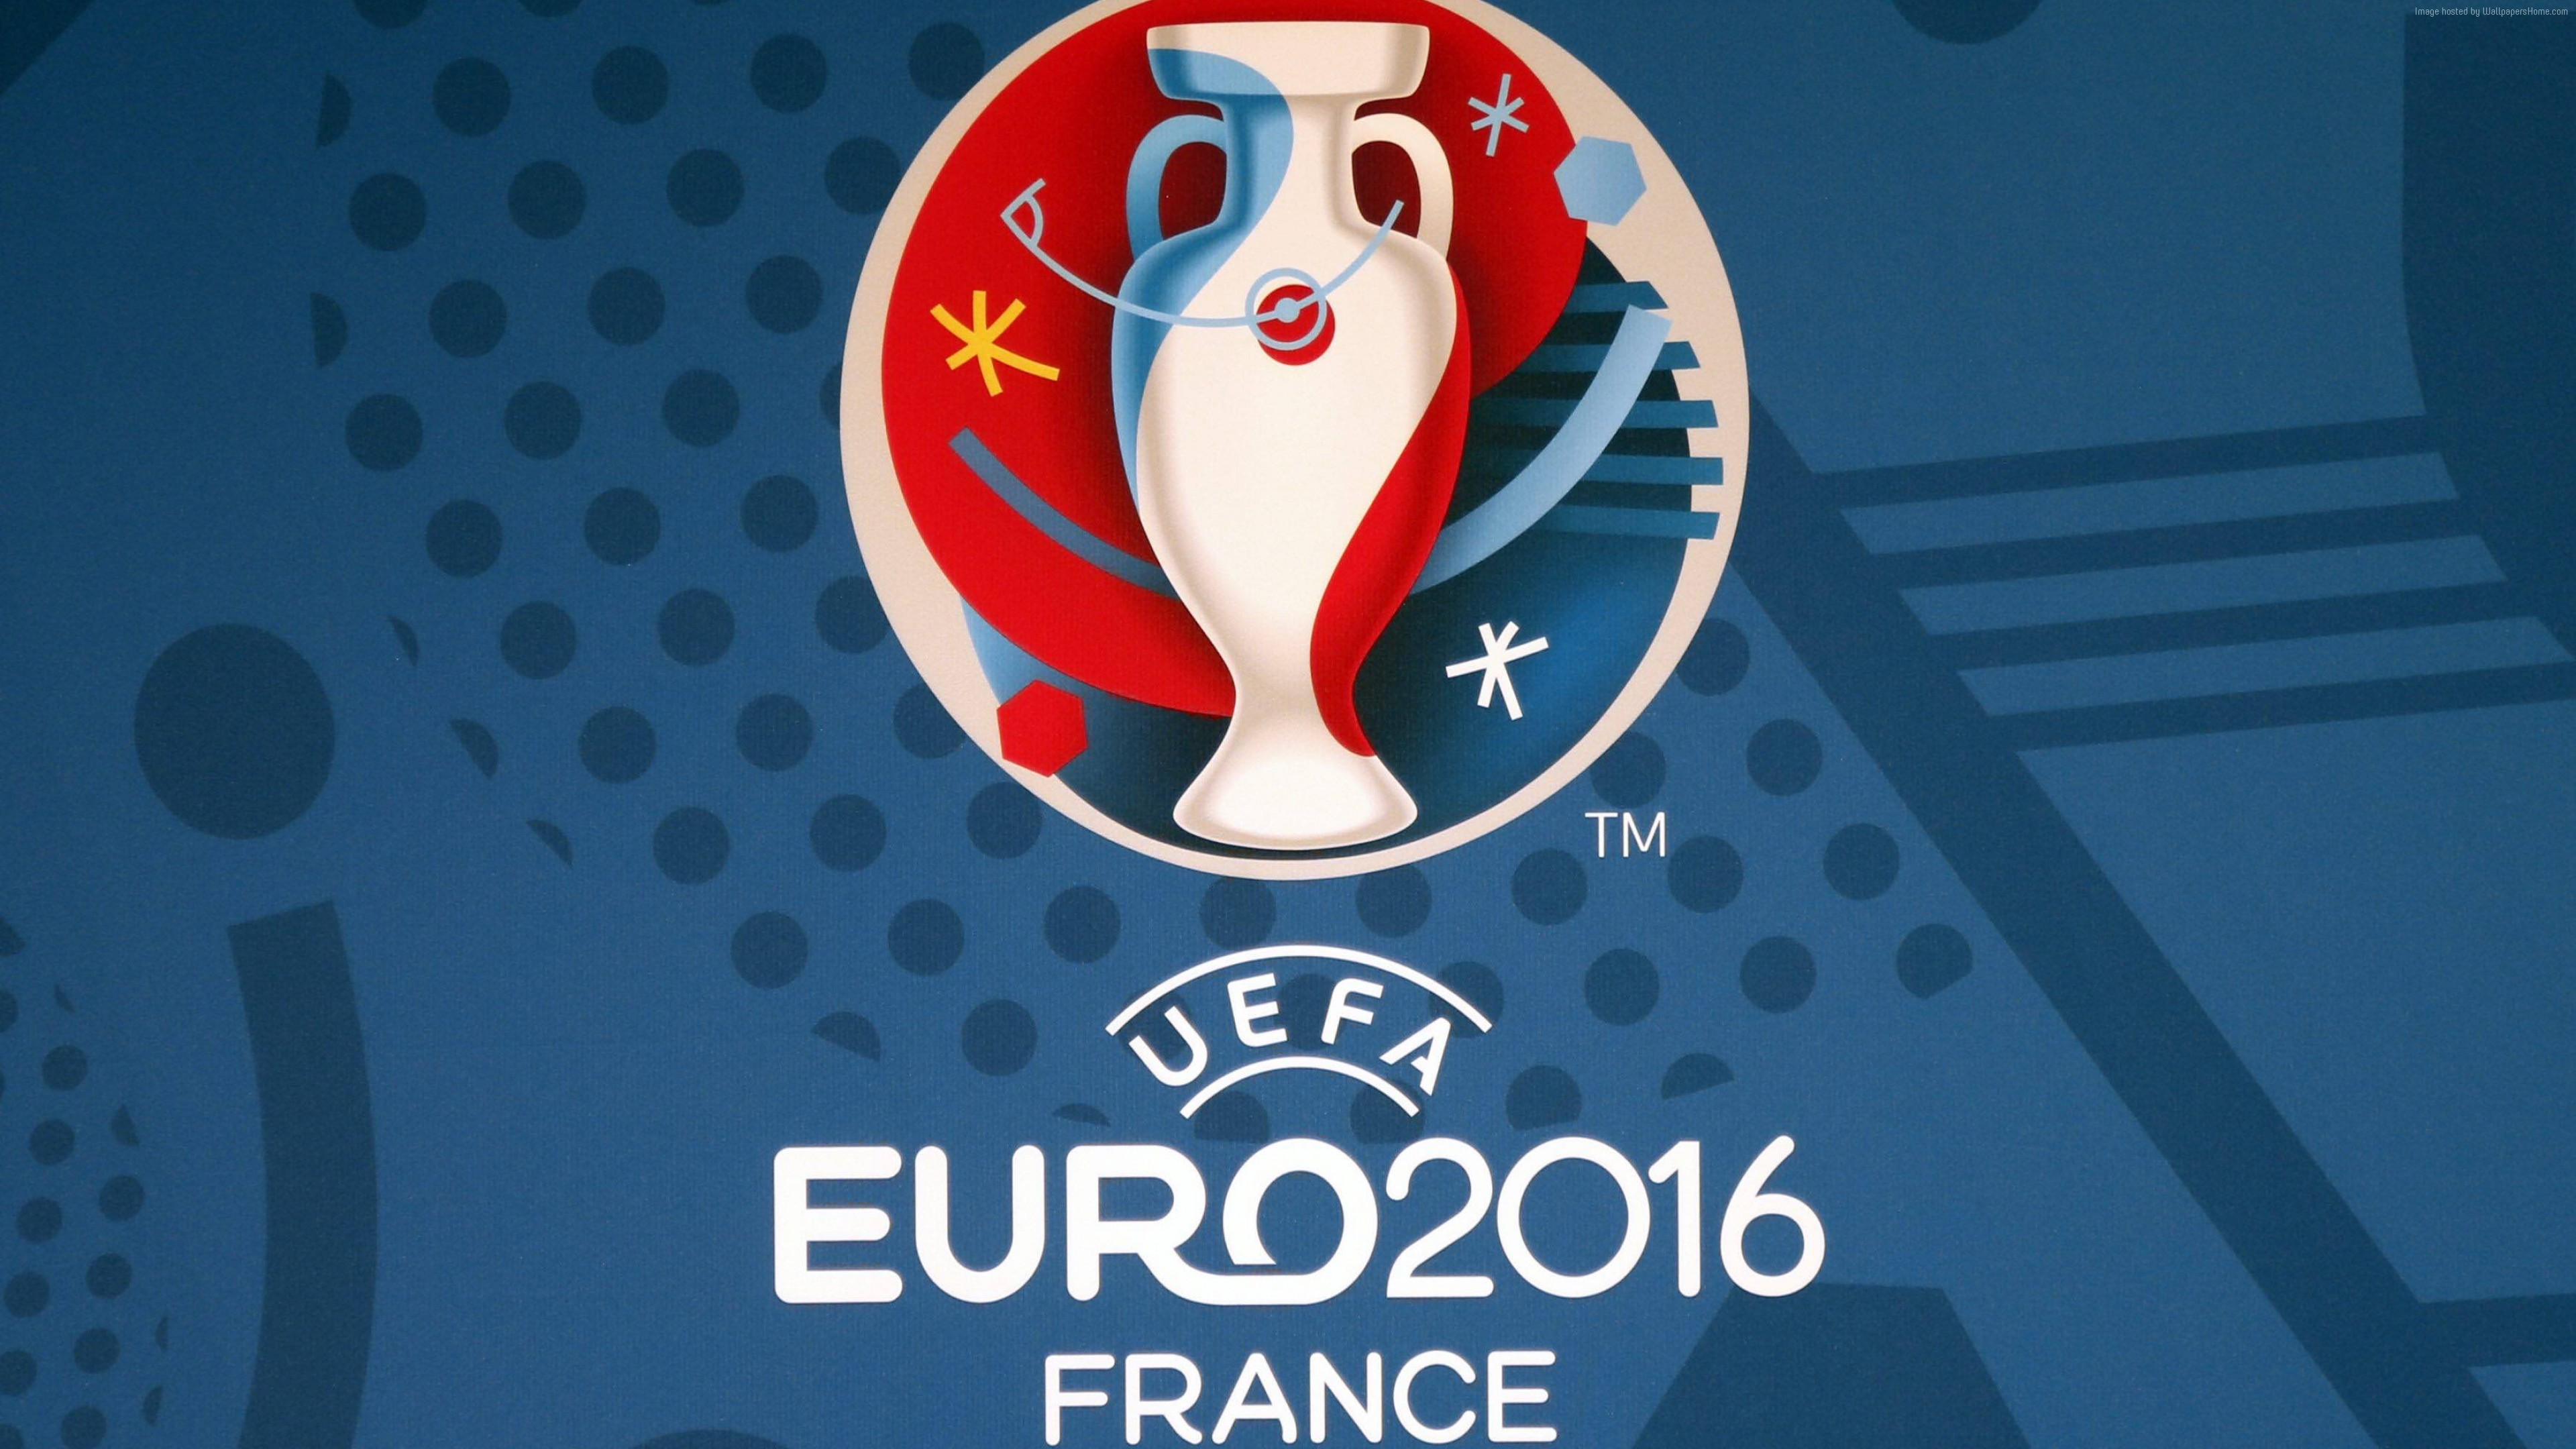 Wallpaper euro 2016, football, logo, France, Geneva, Sport